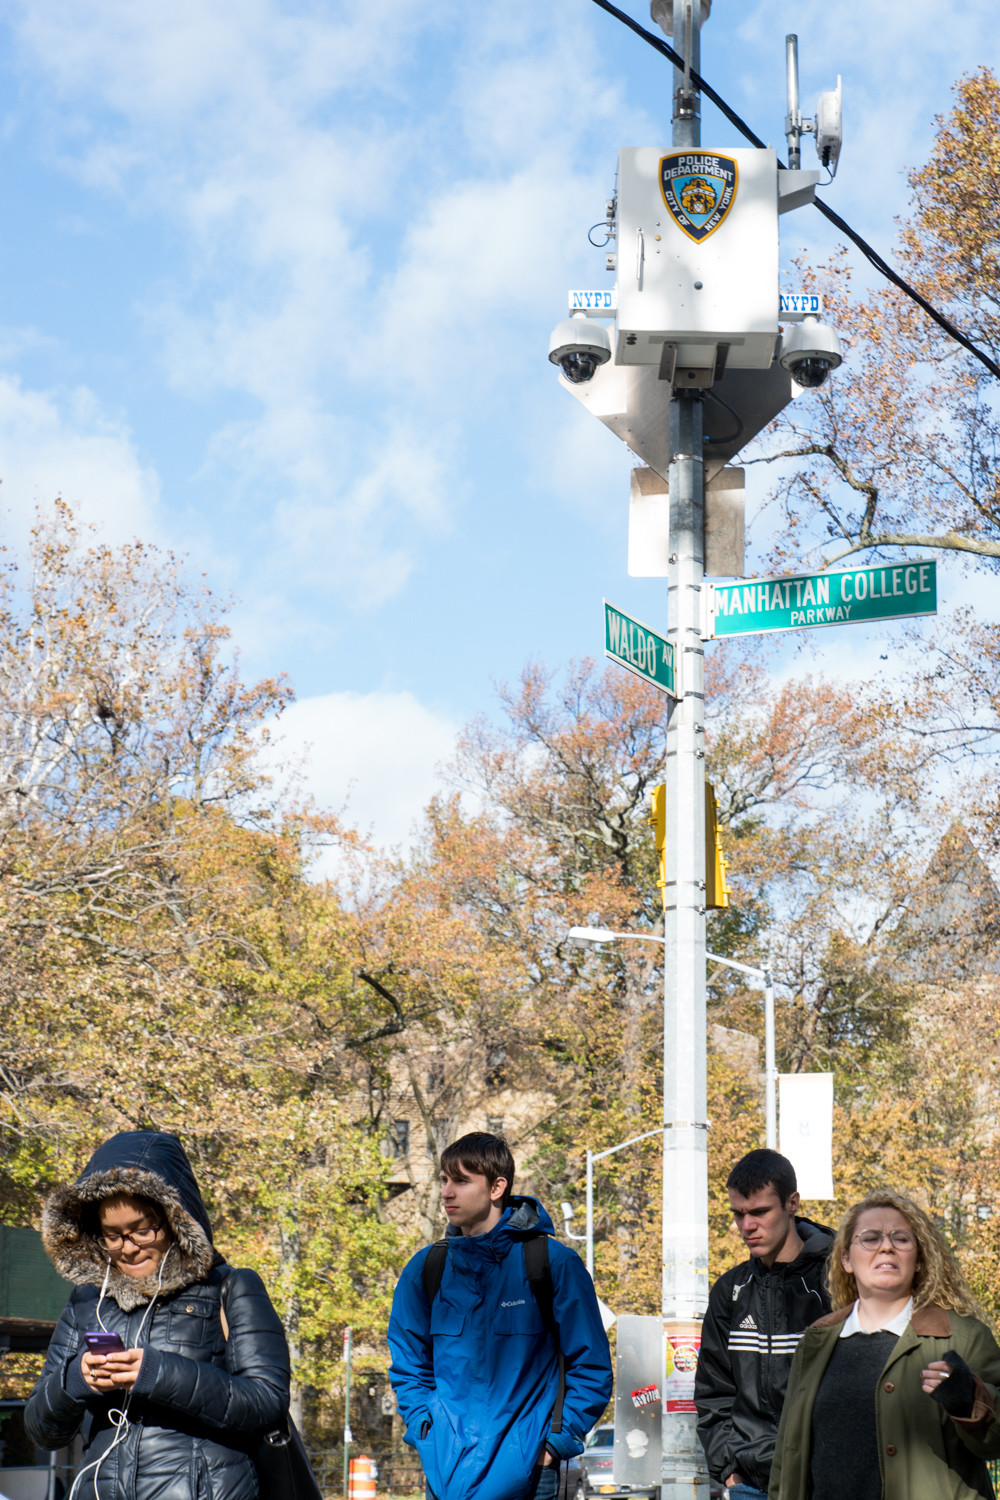 Pedestrians walk under New York Police Department security cameras at the intersection of Manhattan College Parkway and Waldo Avenue. The 50th Precinct wants to install more cameras in Marble Hill, where business owners and residents have said crime is a problem.